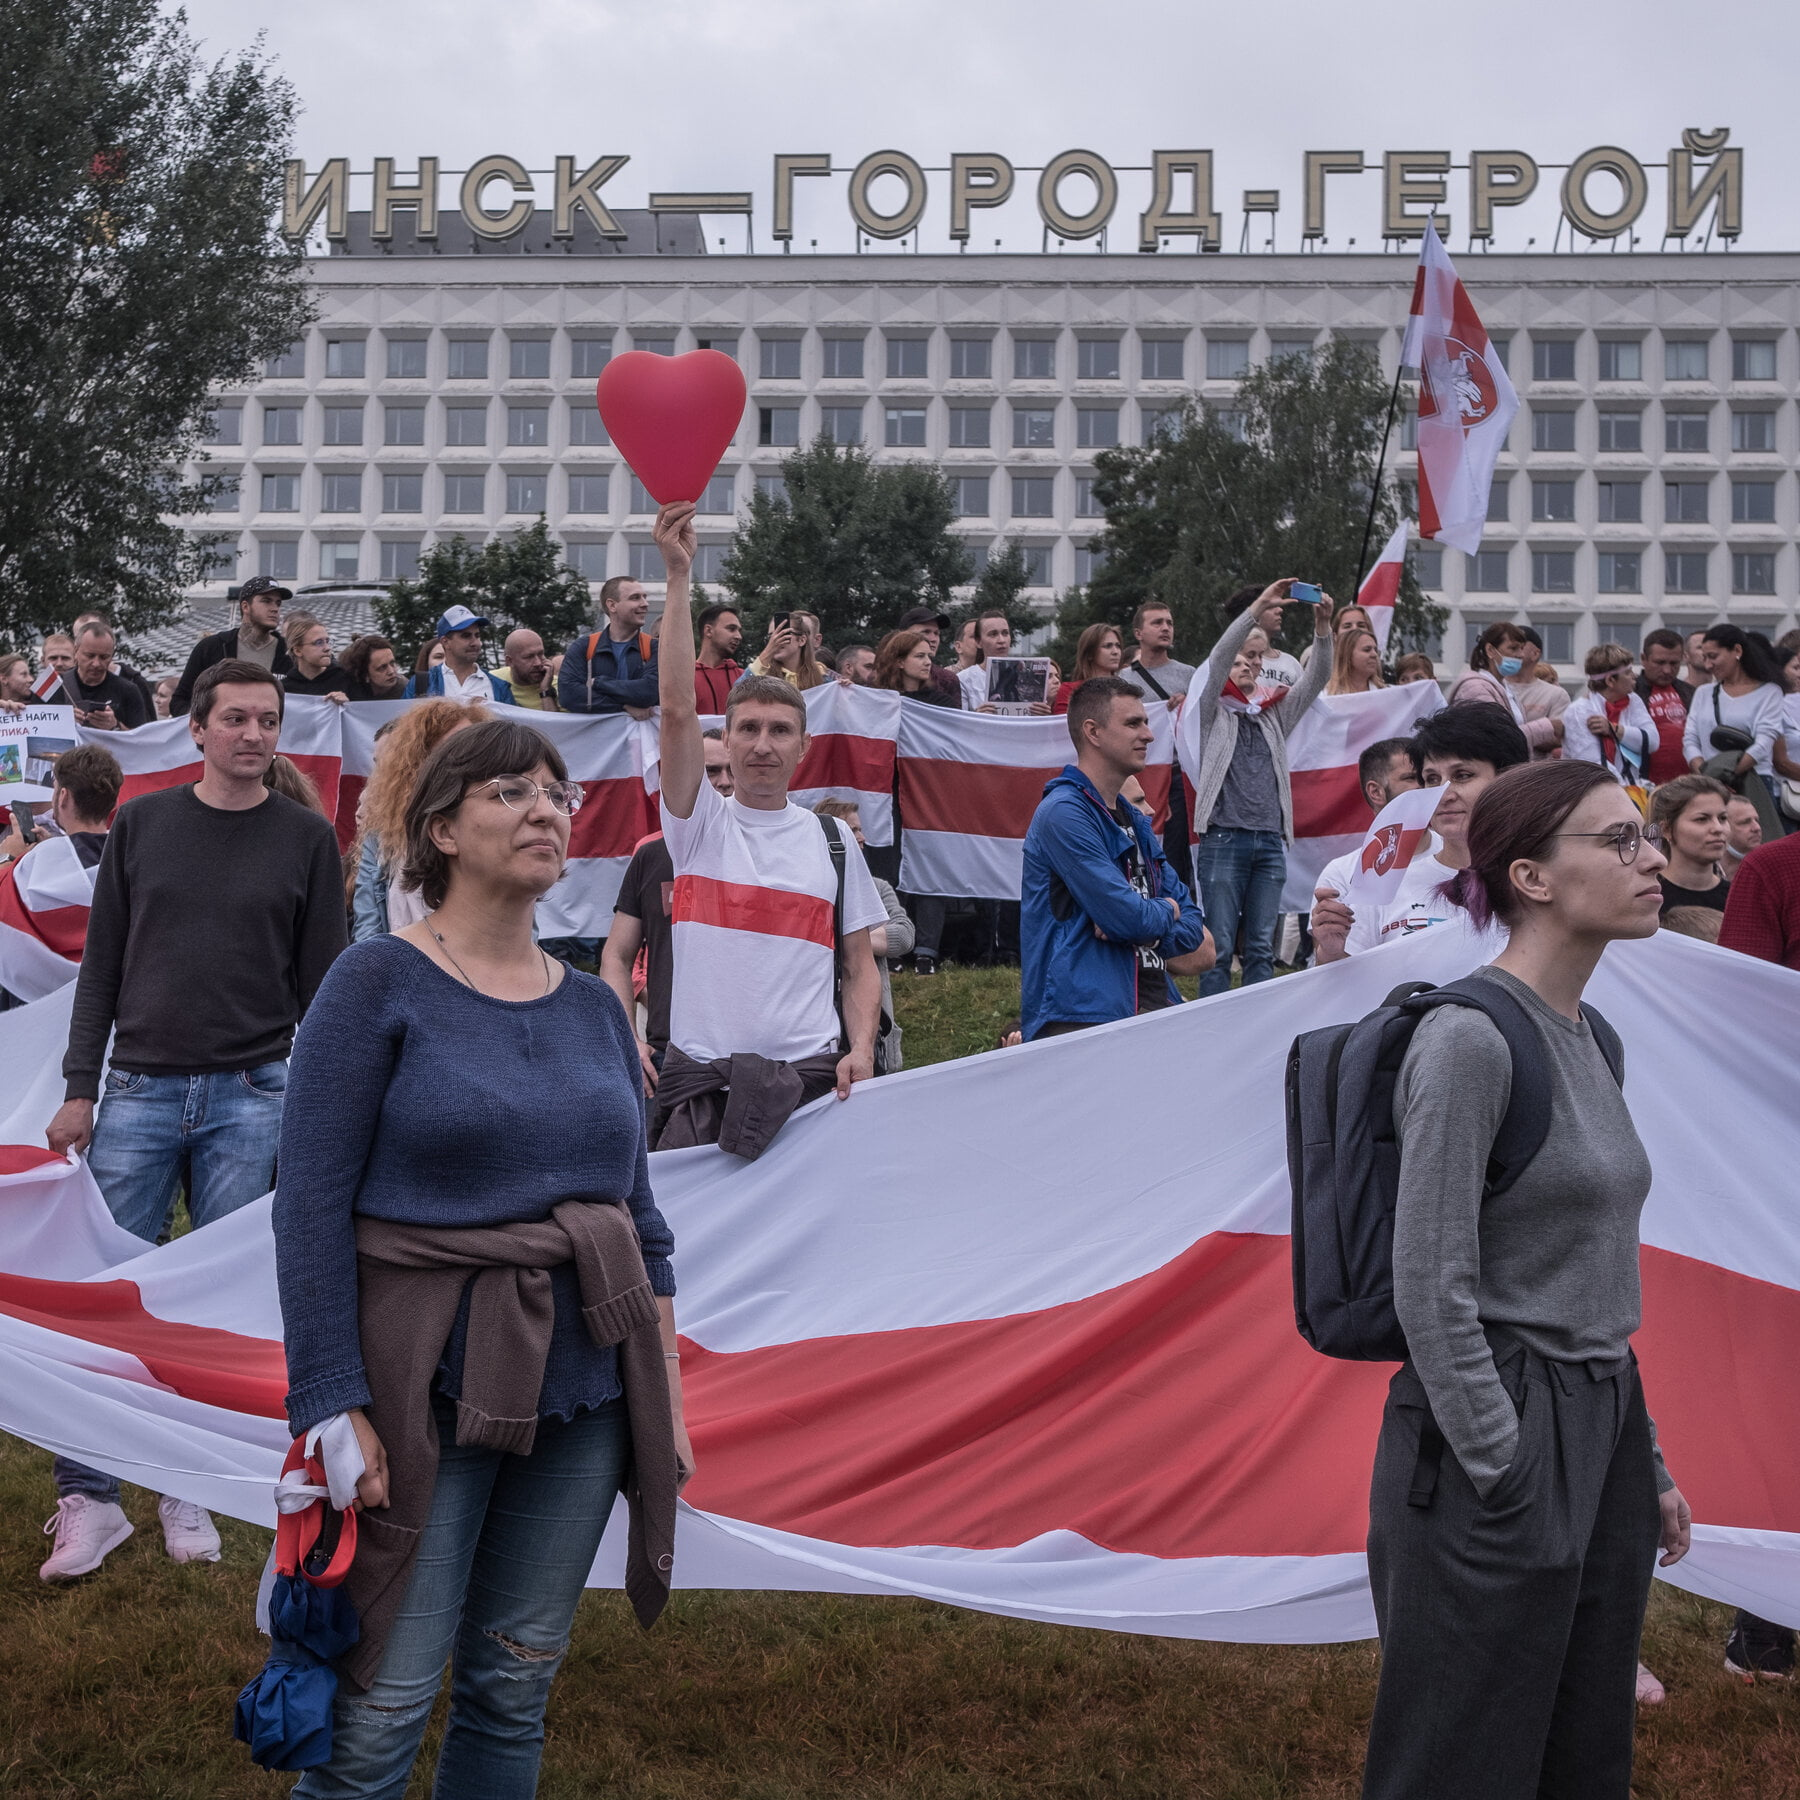 More than 300 people were arrested for taking part in Sunday's protests against the regime in Belarus